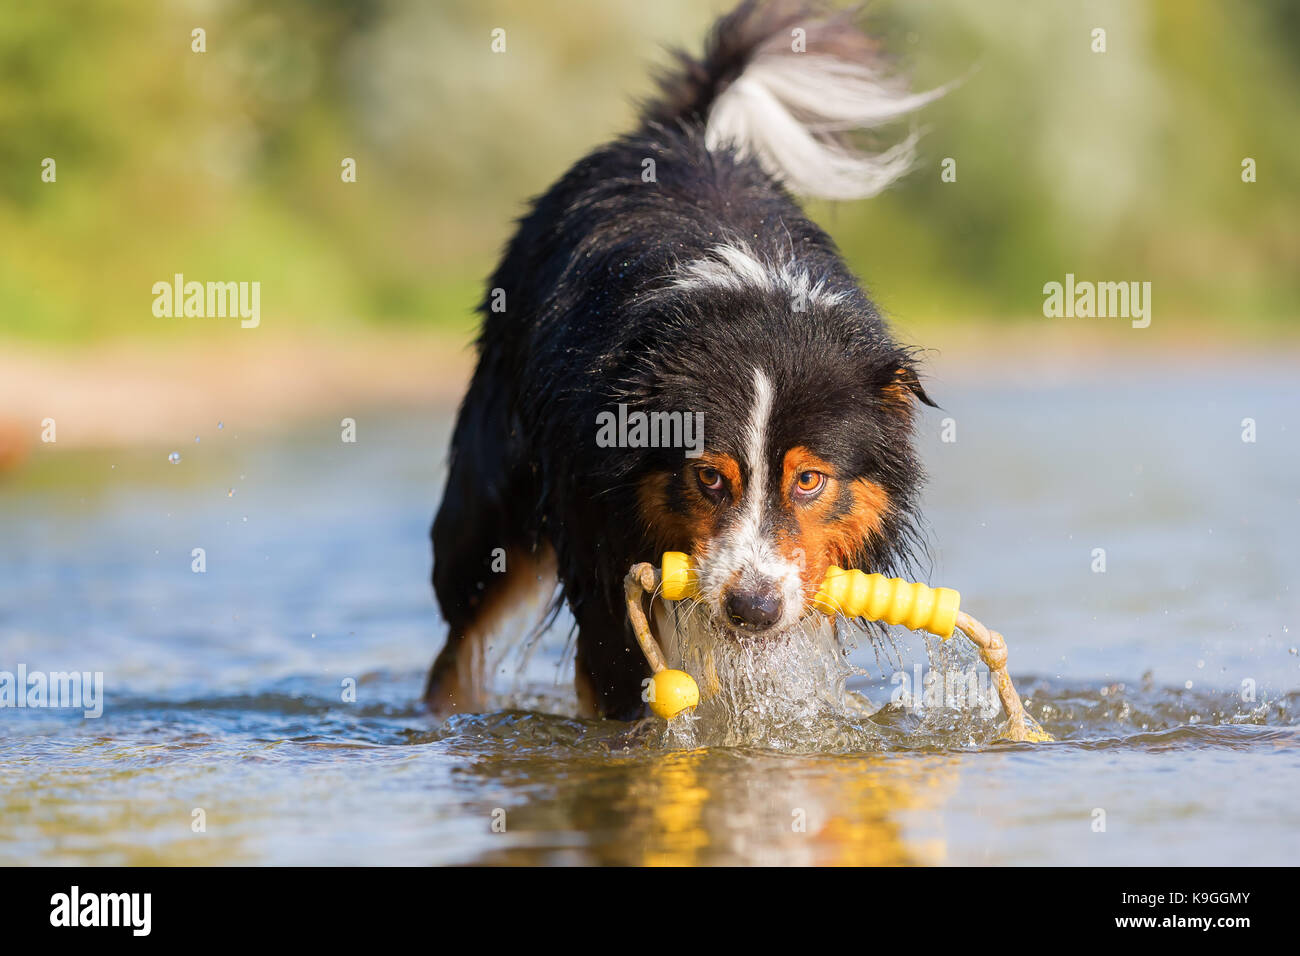 Australian Shepherd dog retrieves a toy out of a lake - Stock Image